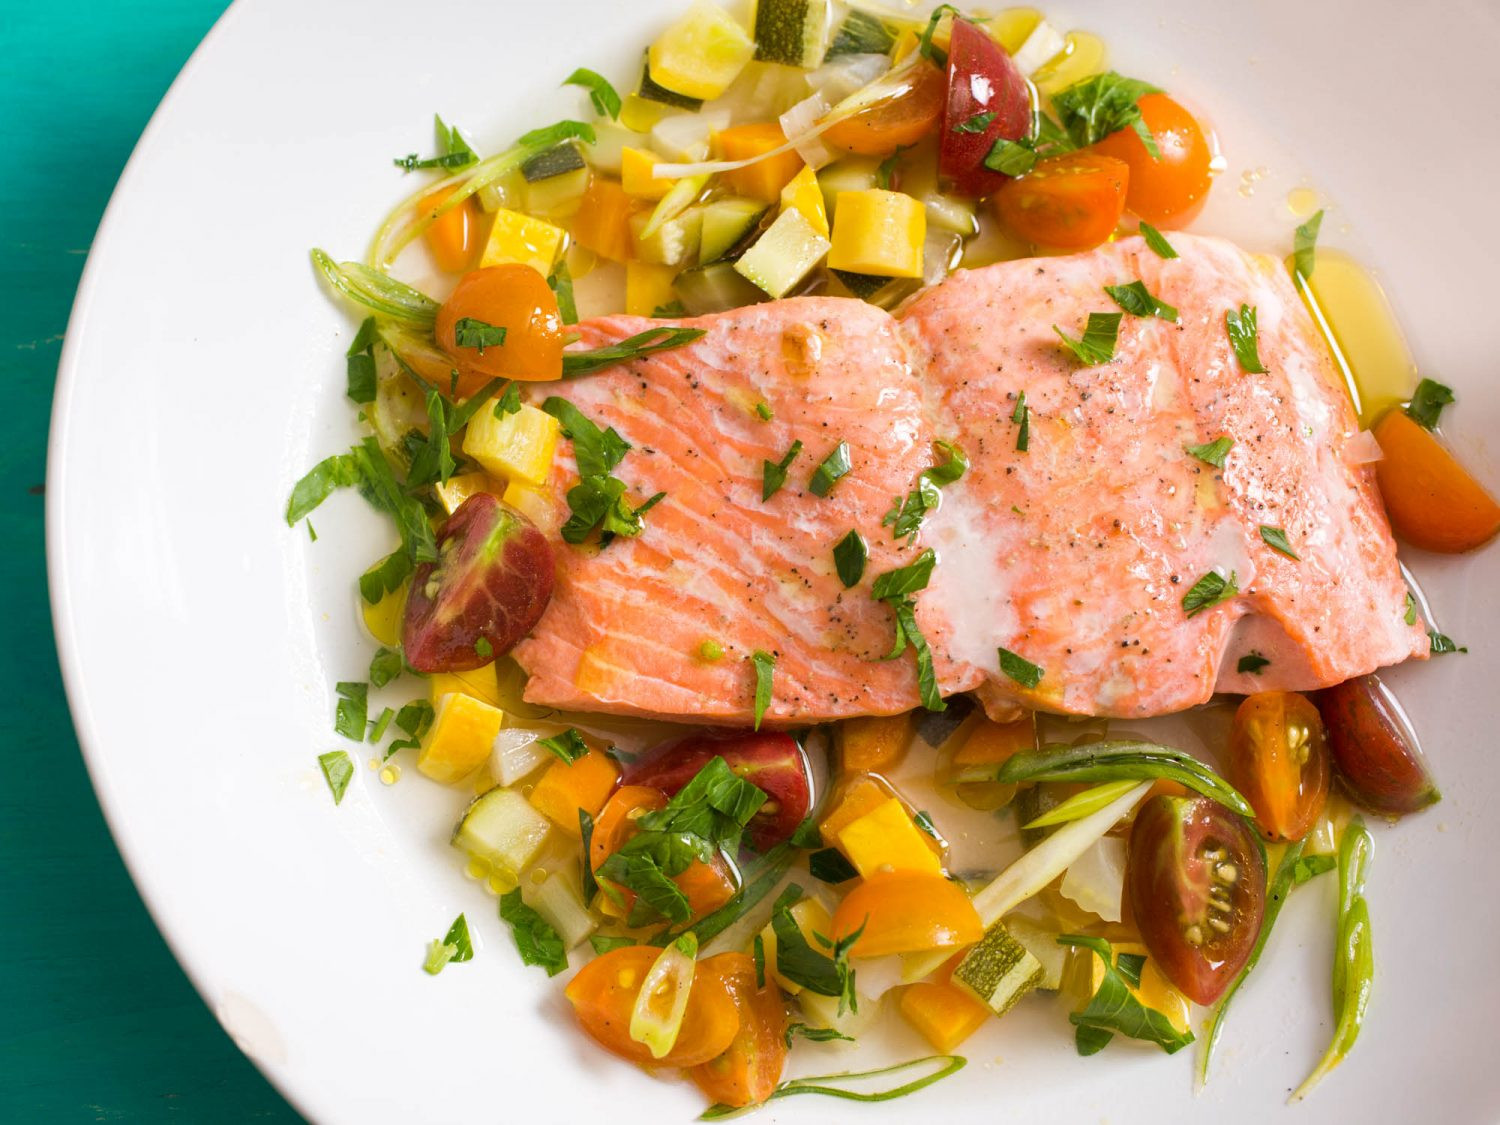 Healthy Side Dishes For Fish  What to Eat With Salmon Tried and True Side Dishes for a